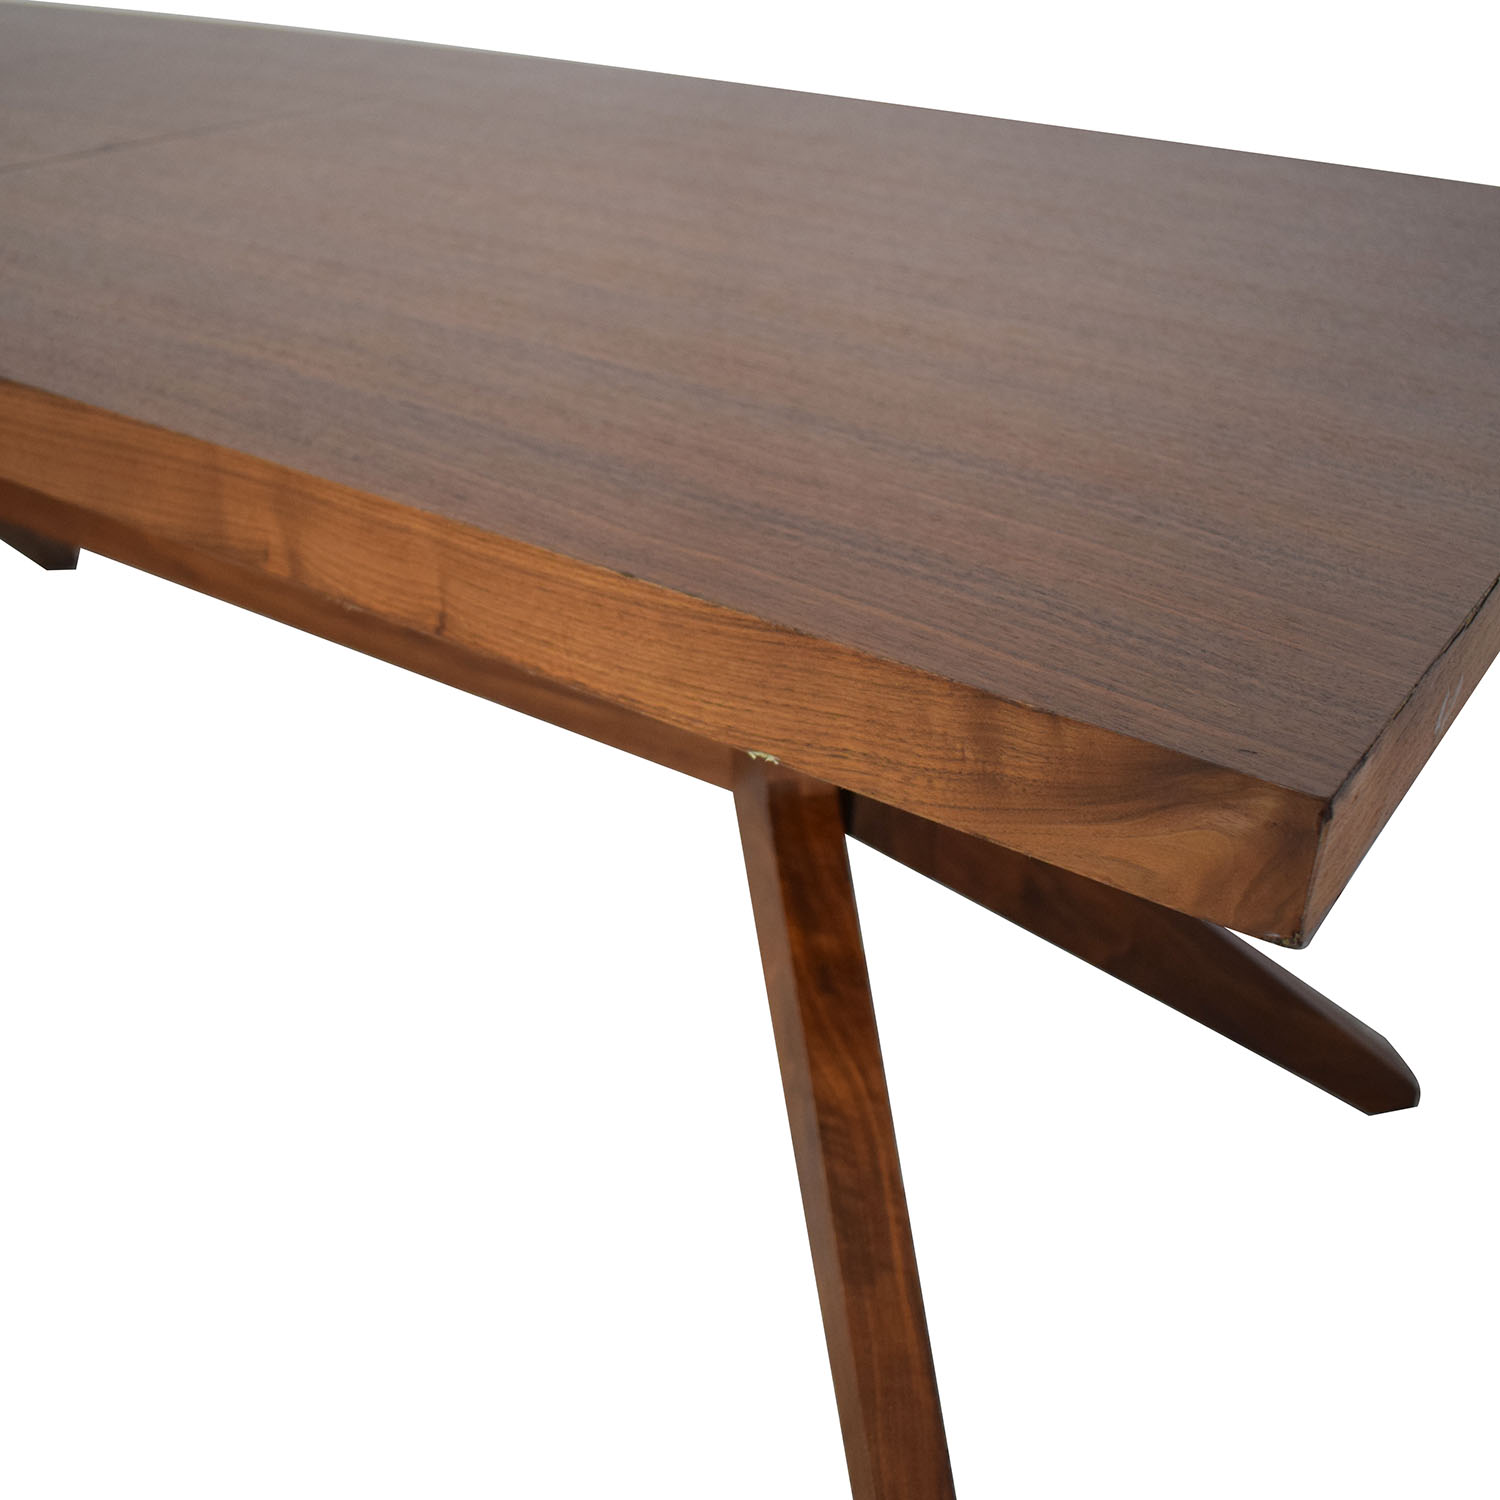 Case Matthew Hilton for Case Cross Extension Dining Table used